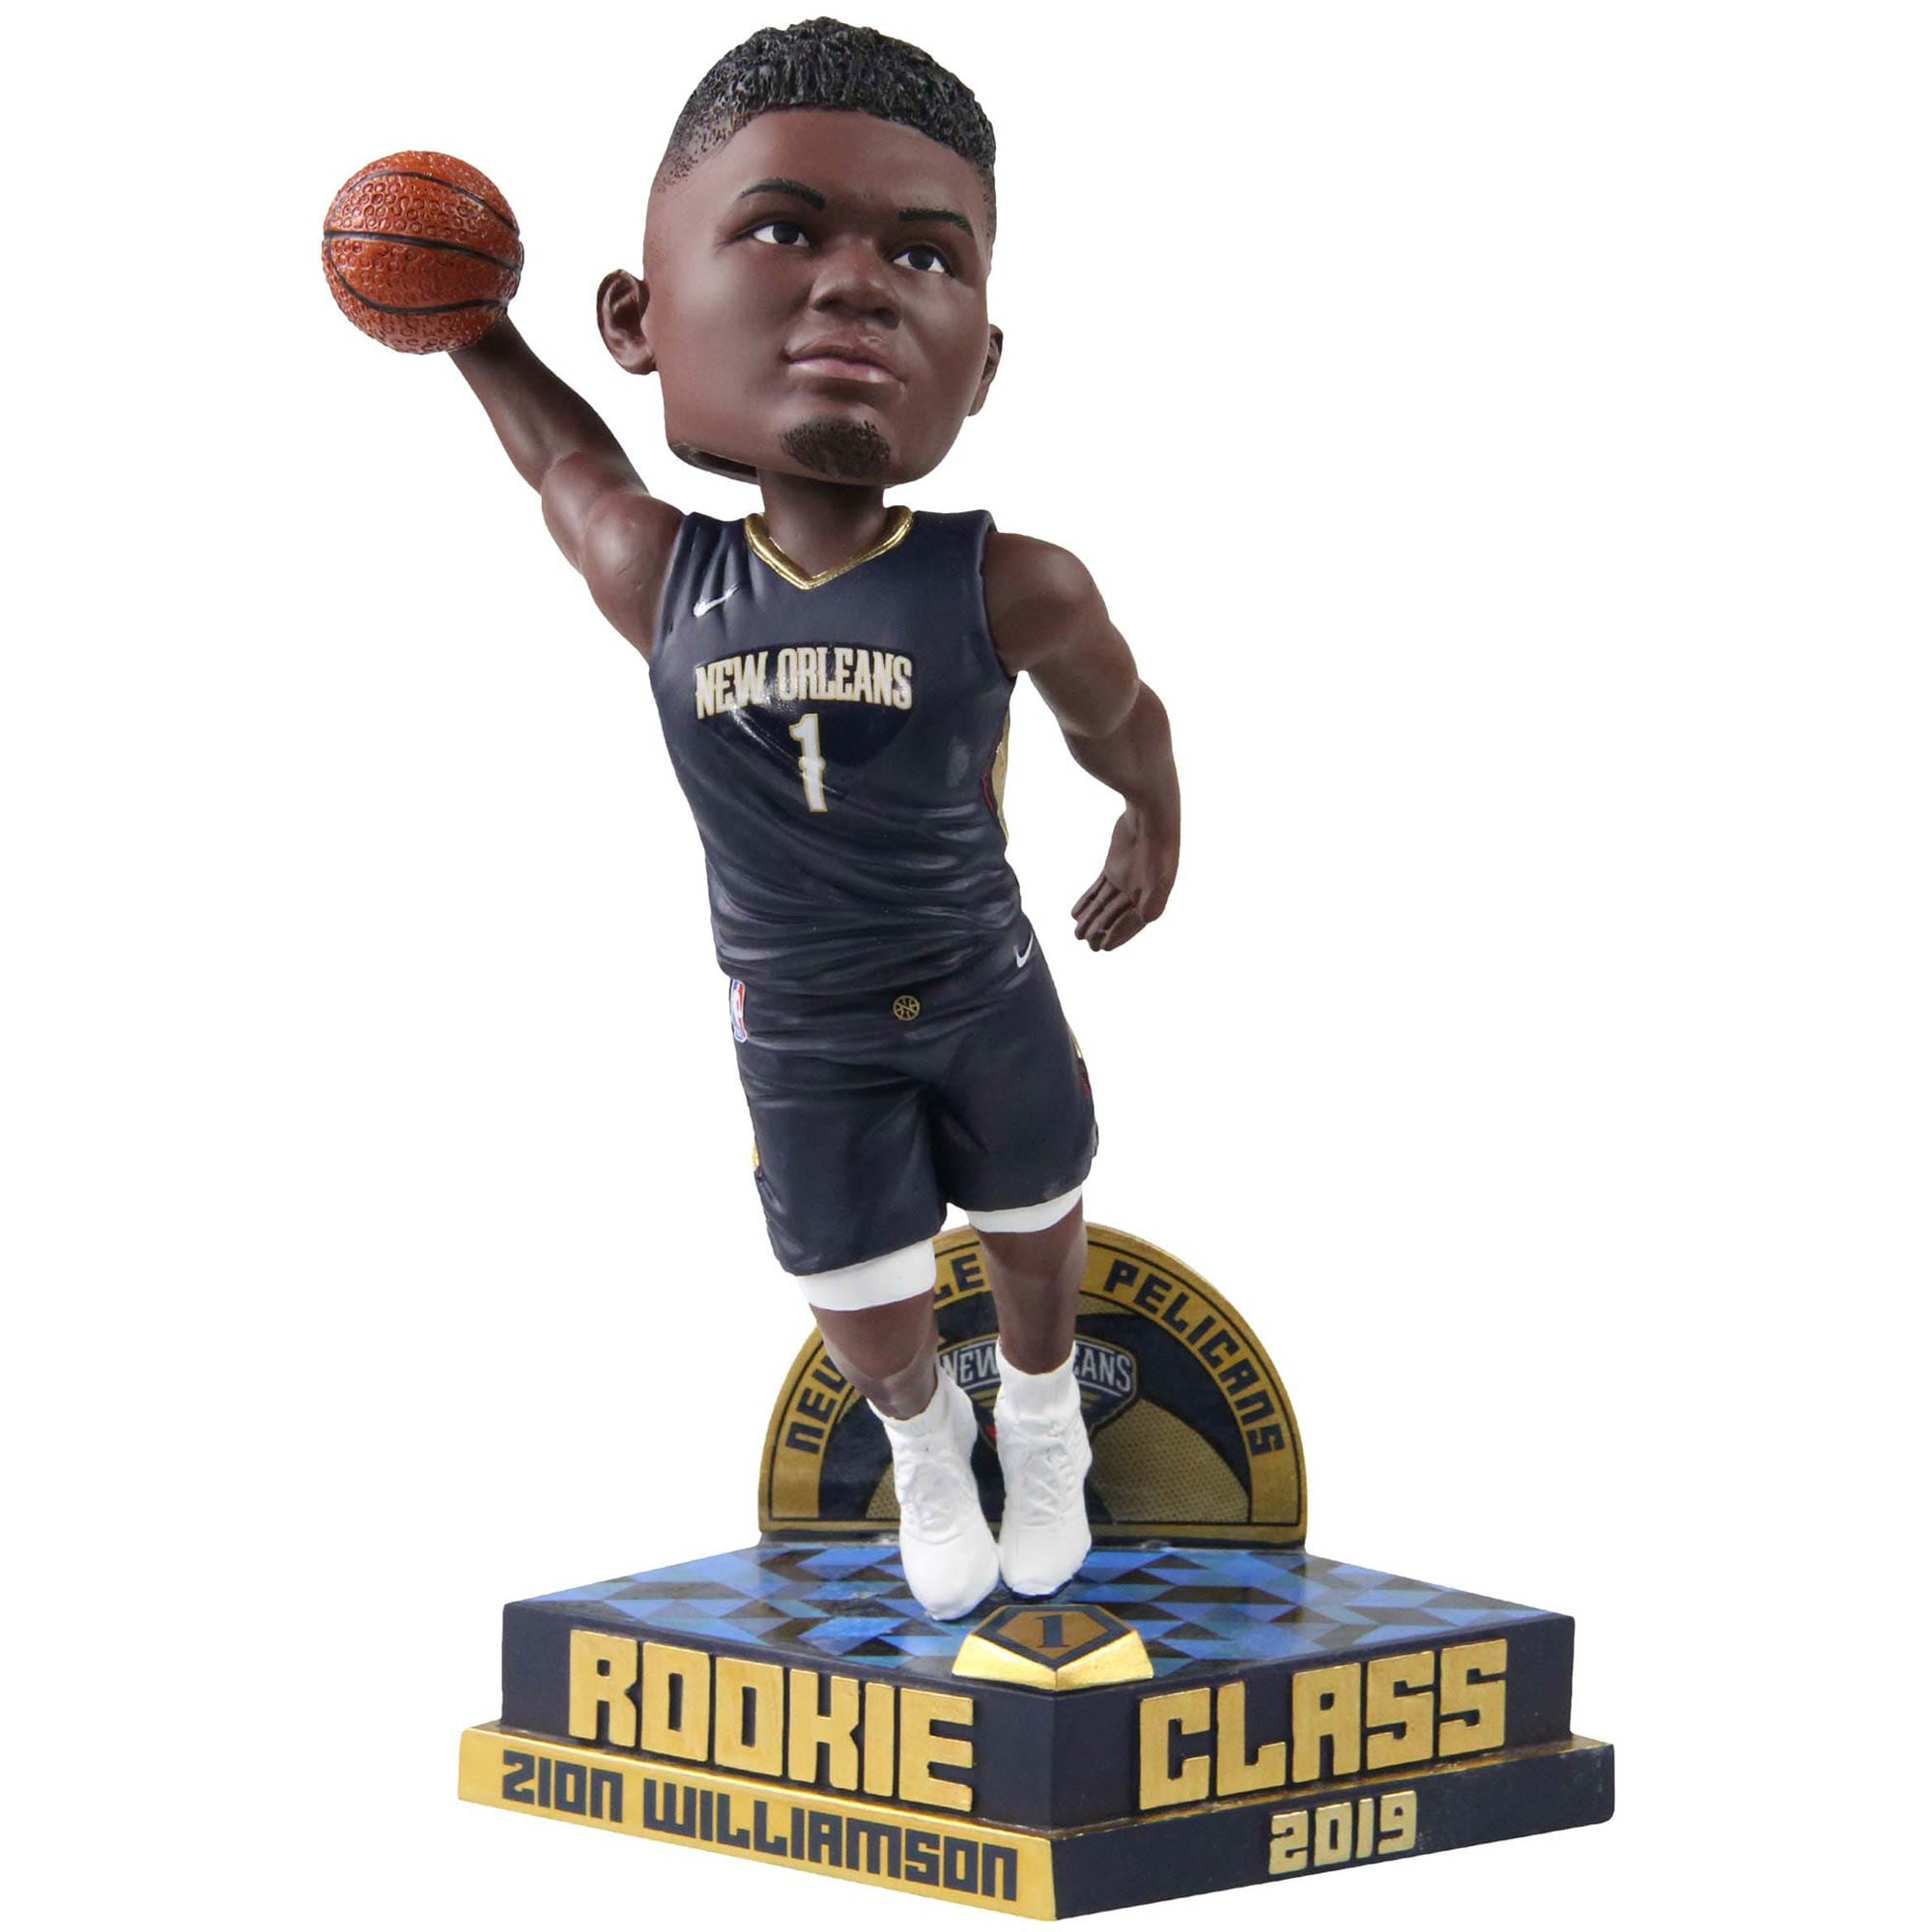 Zion Williamson New Orleans Pelicans Rookie Class Collection Bobblehead